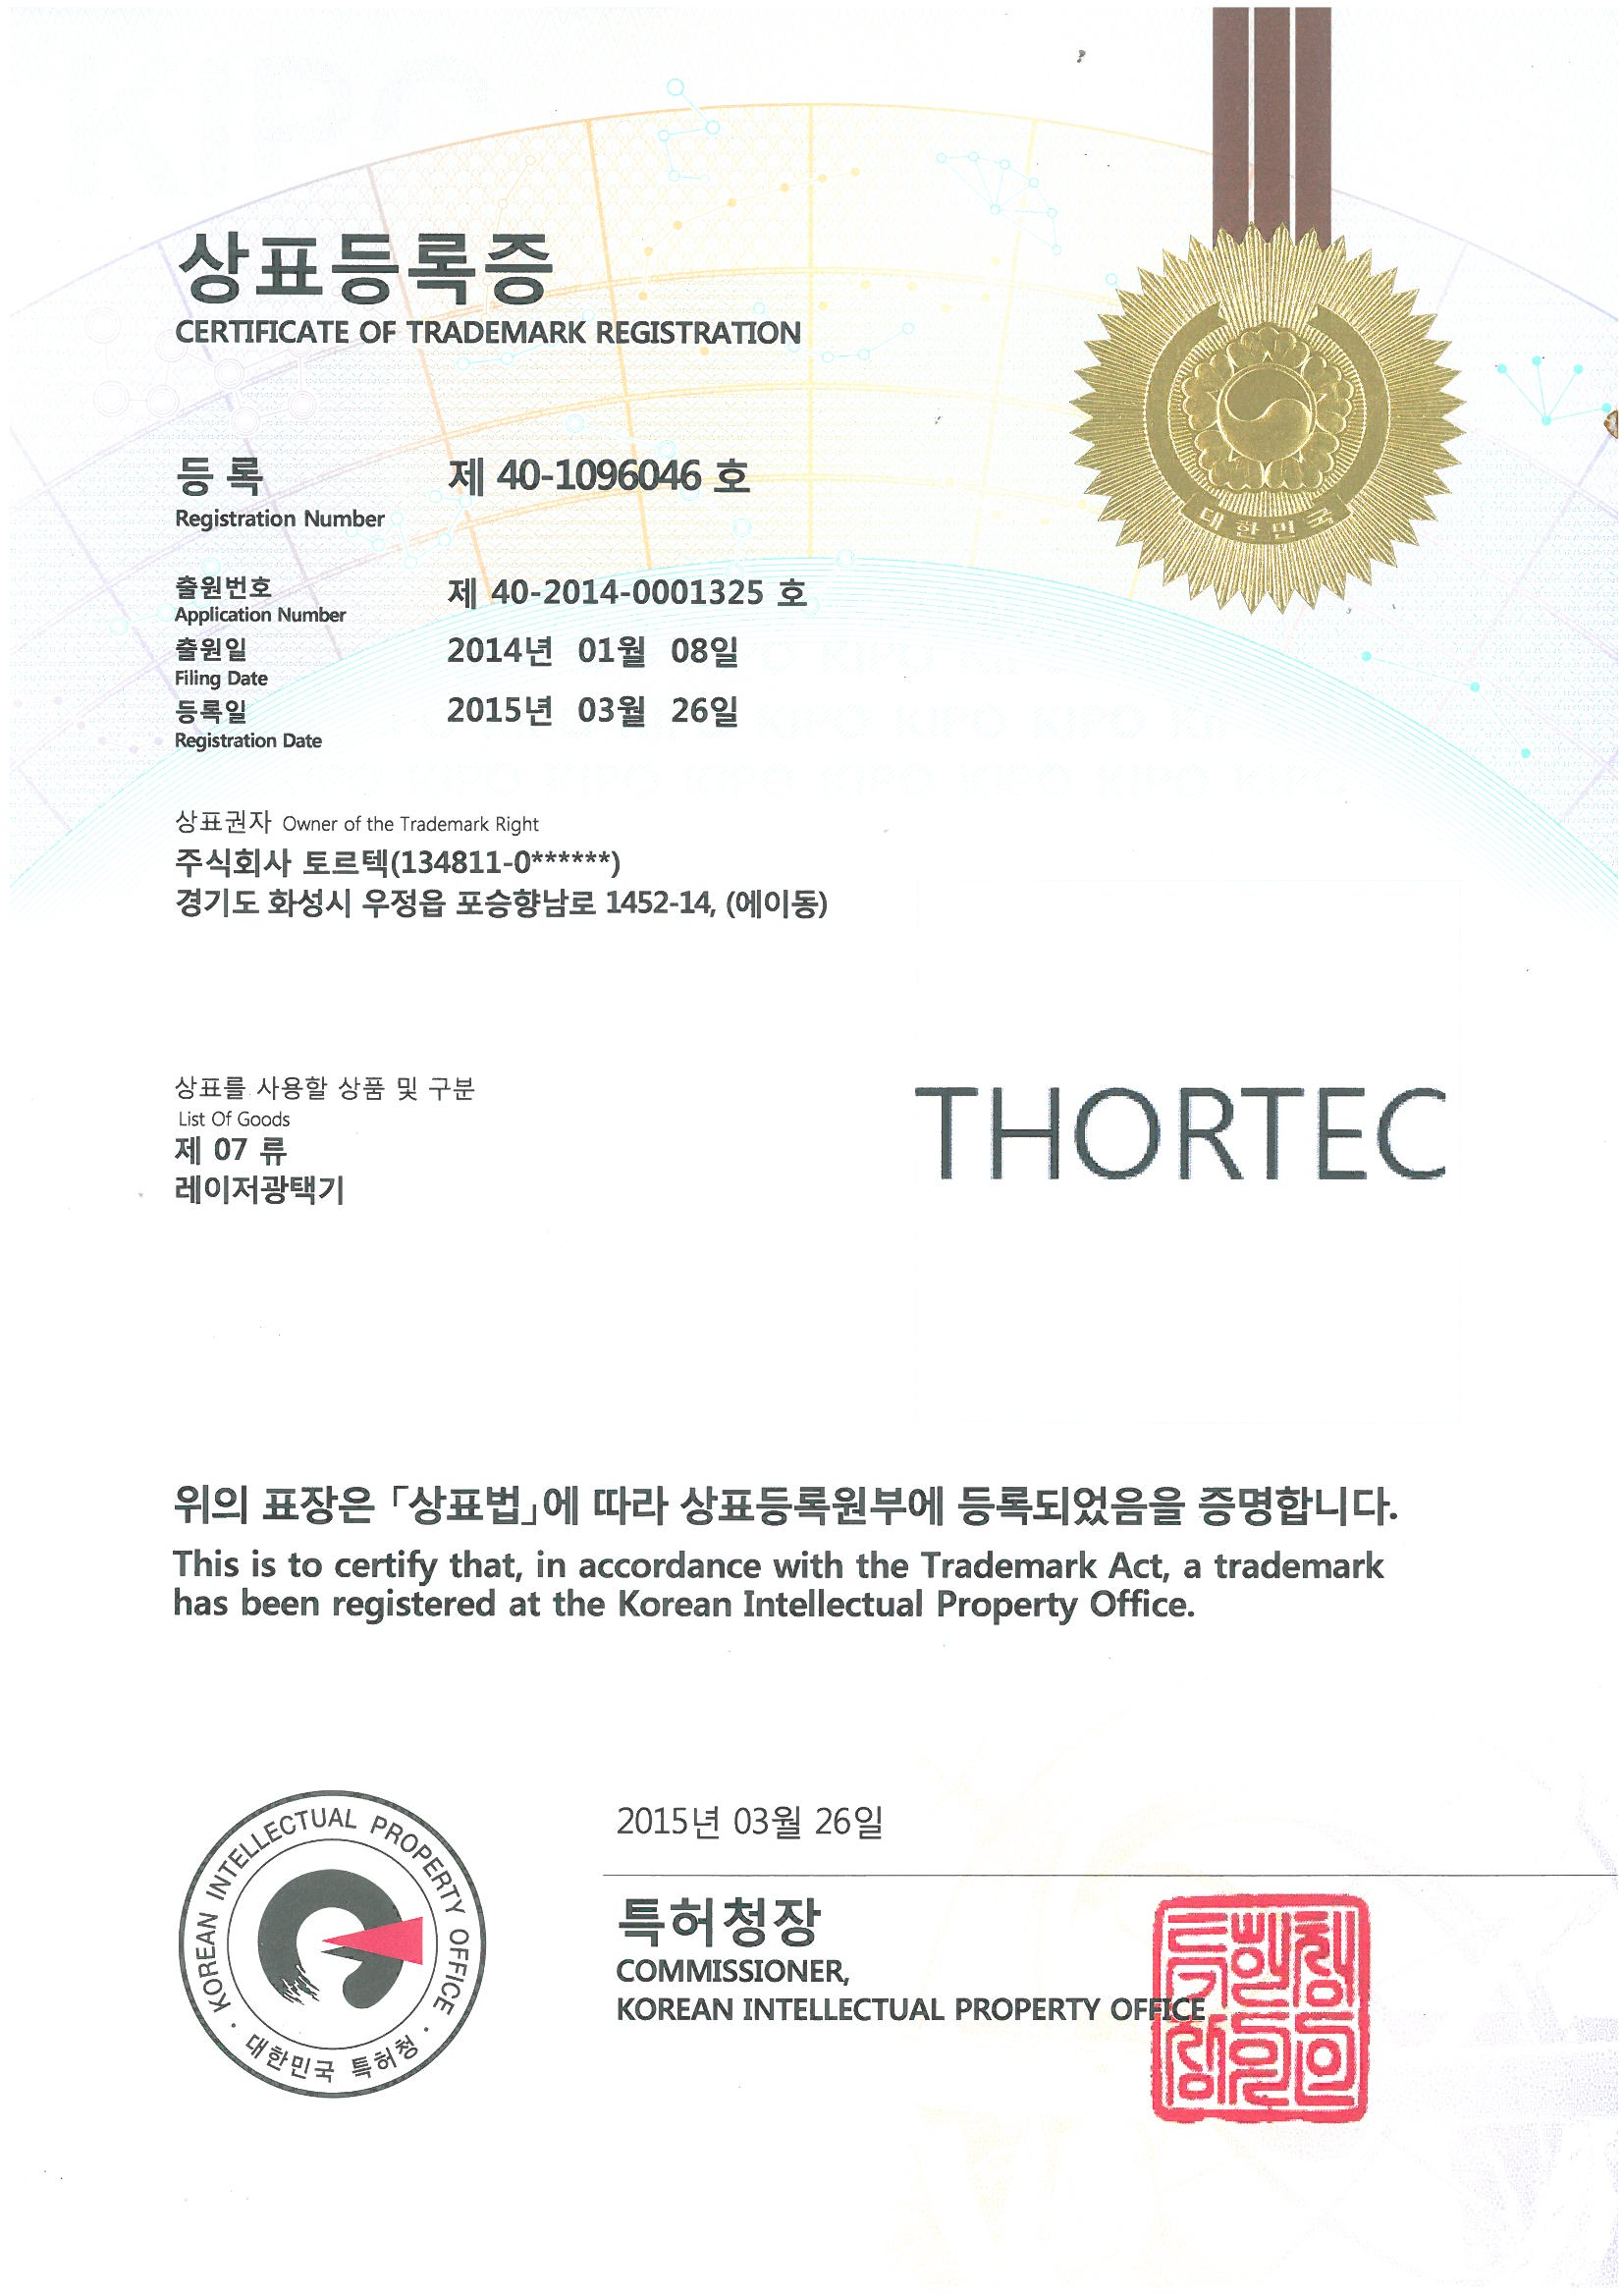 Certificate Trademark ENG Registration (영문 상표 등록증).jpg